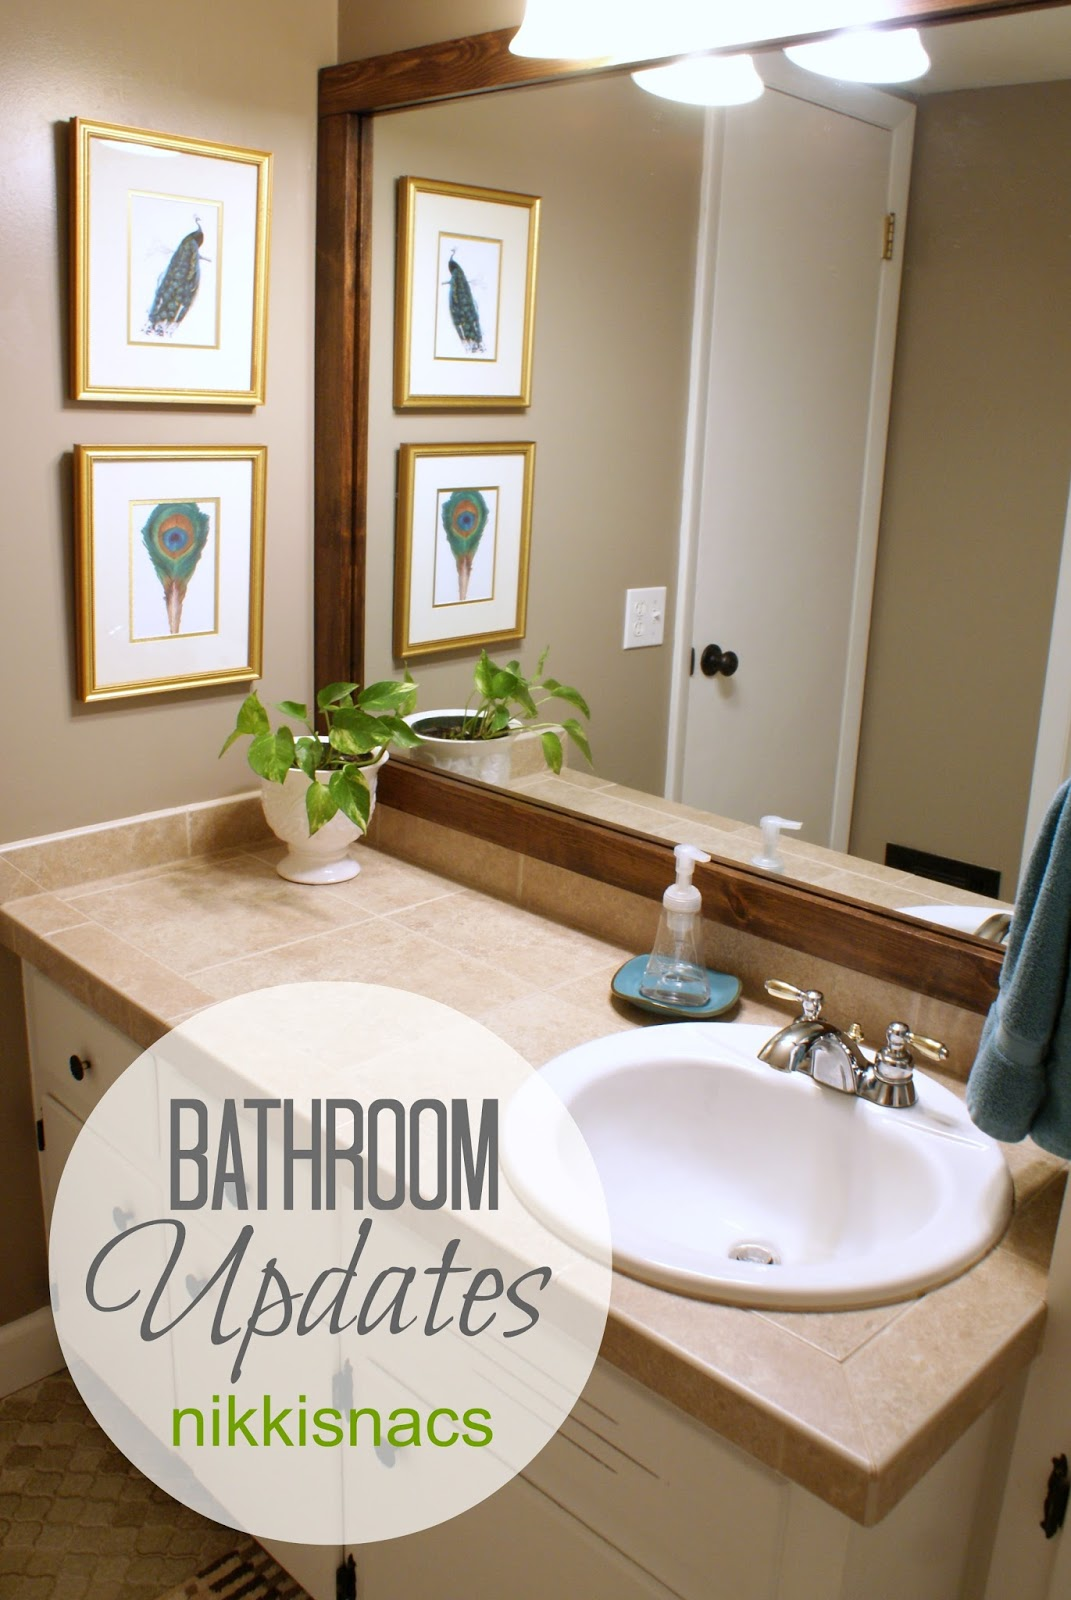 Bathroom updates